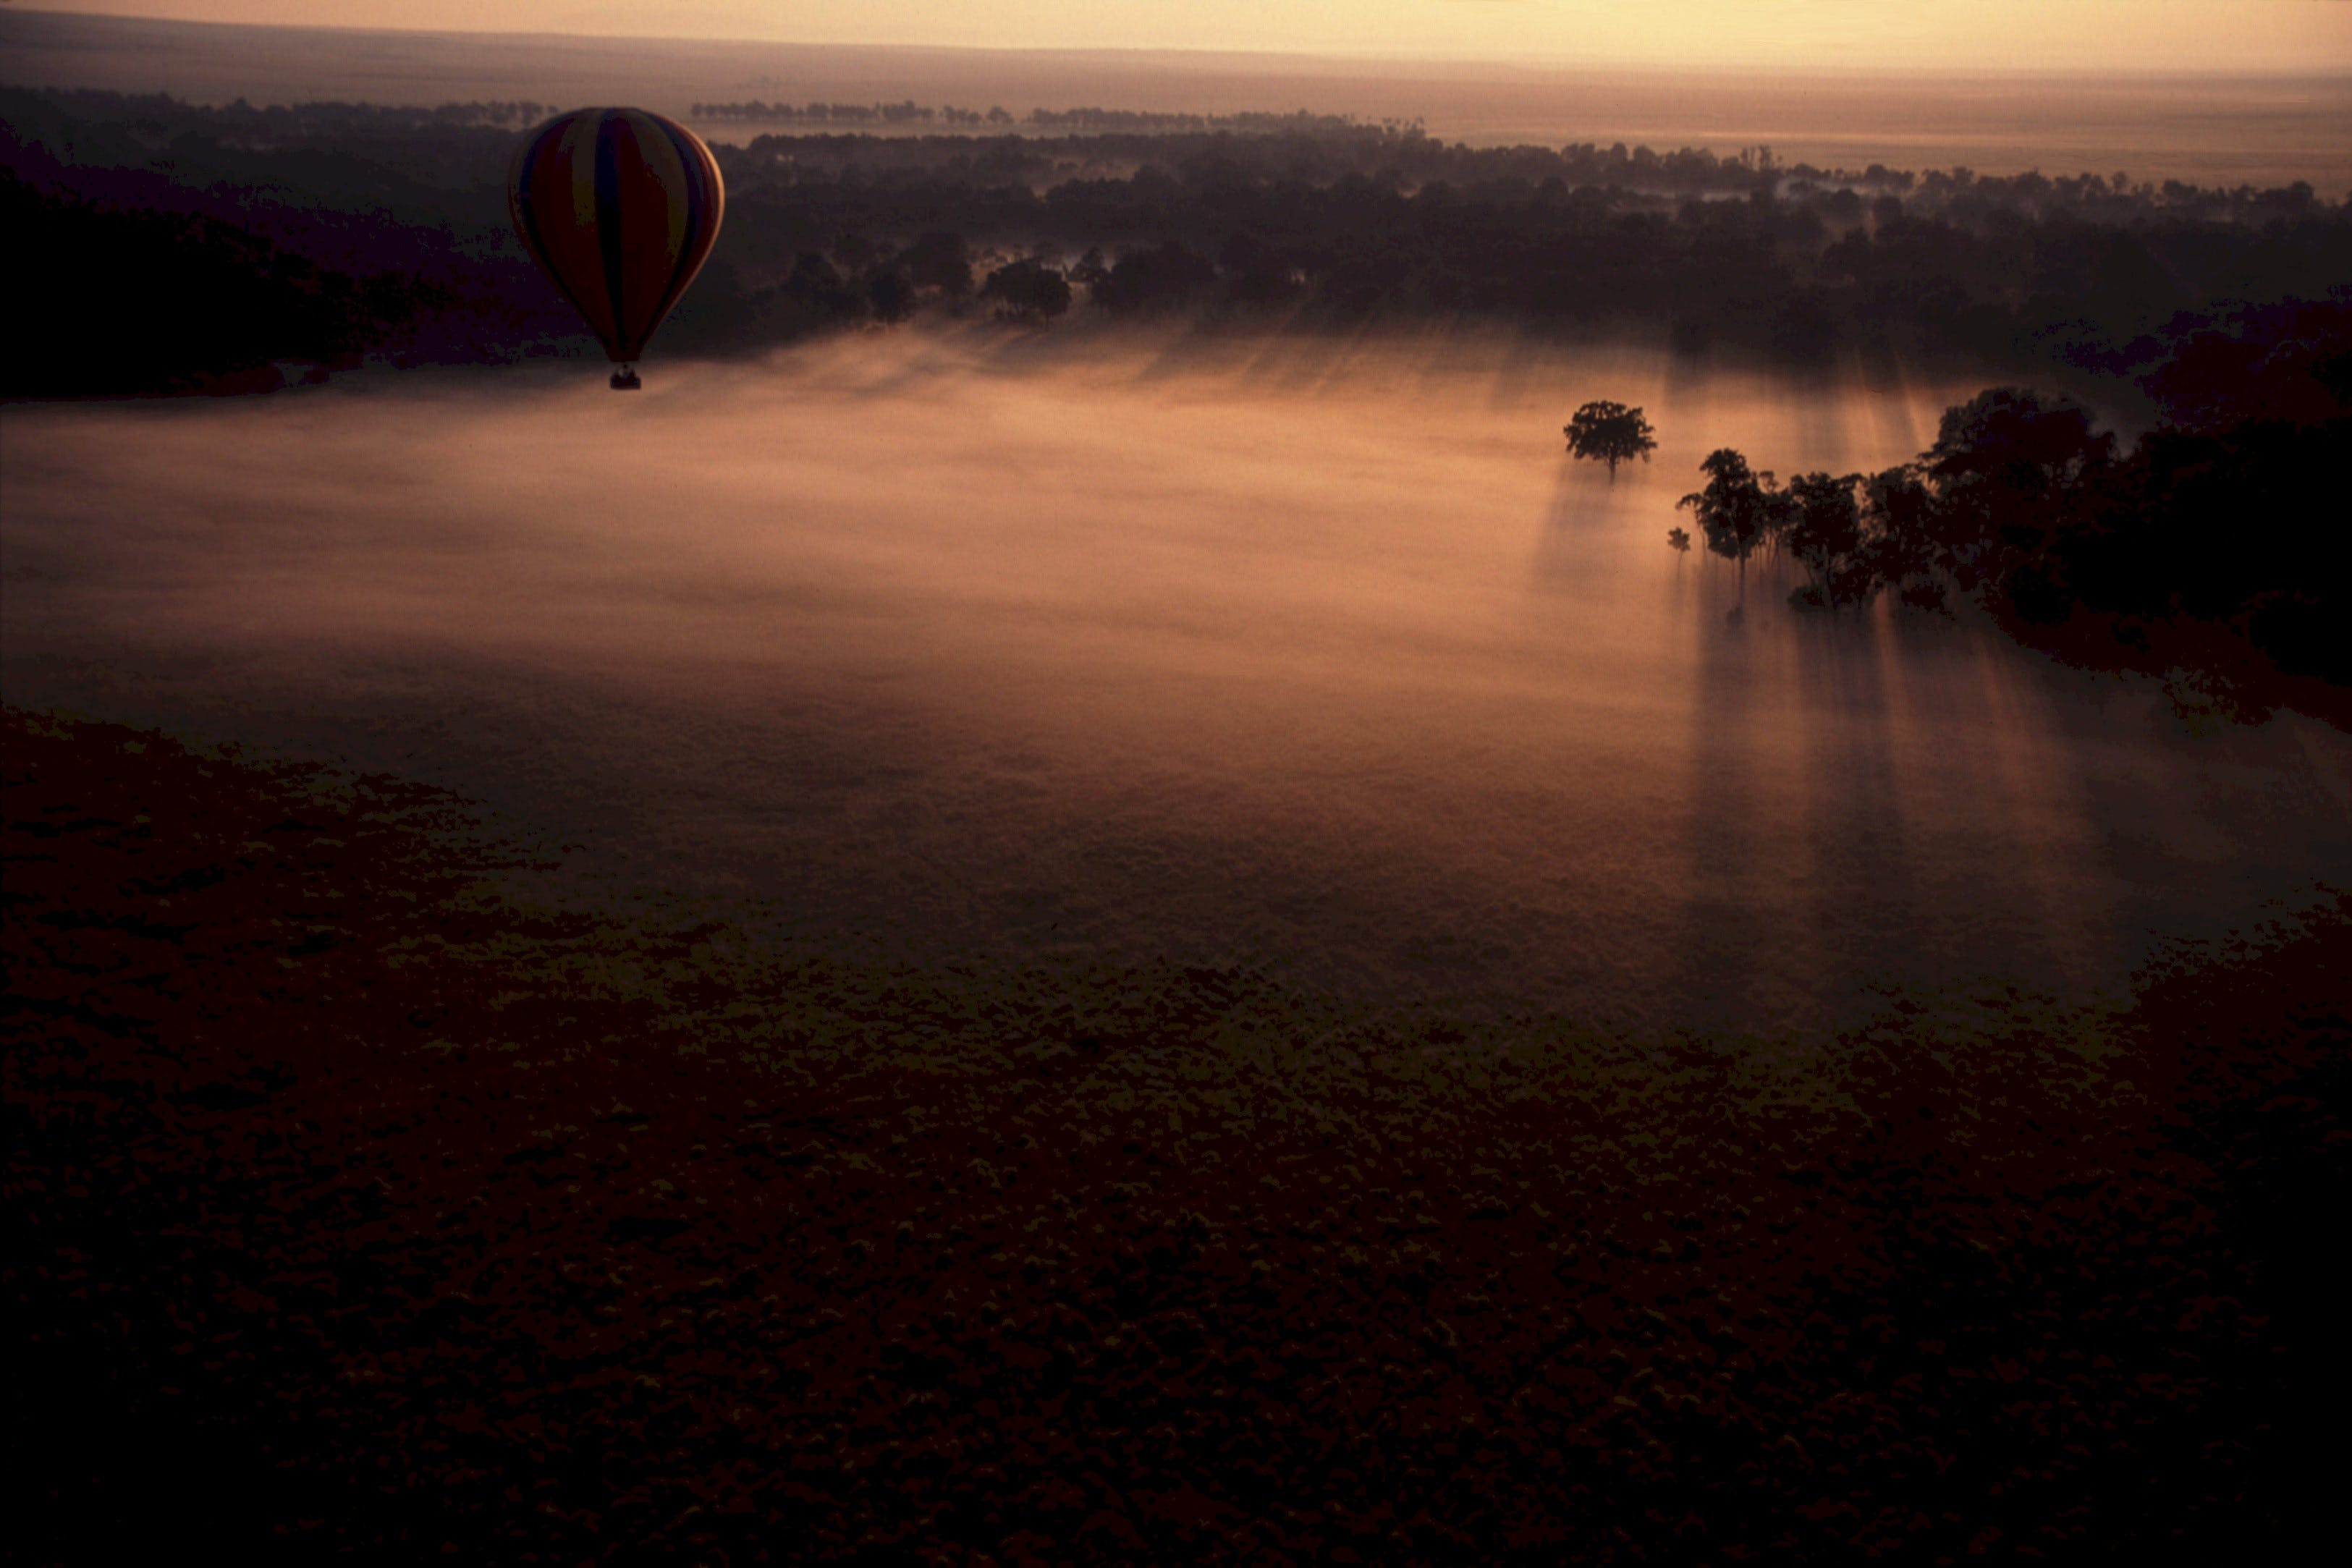 Hot Air Balloon Above Clouds during Sunset